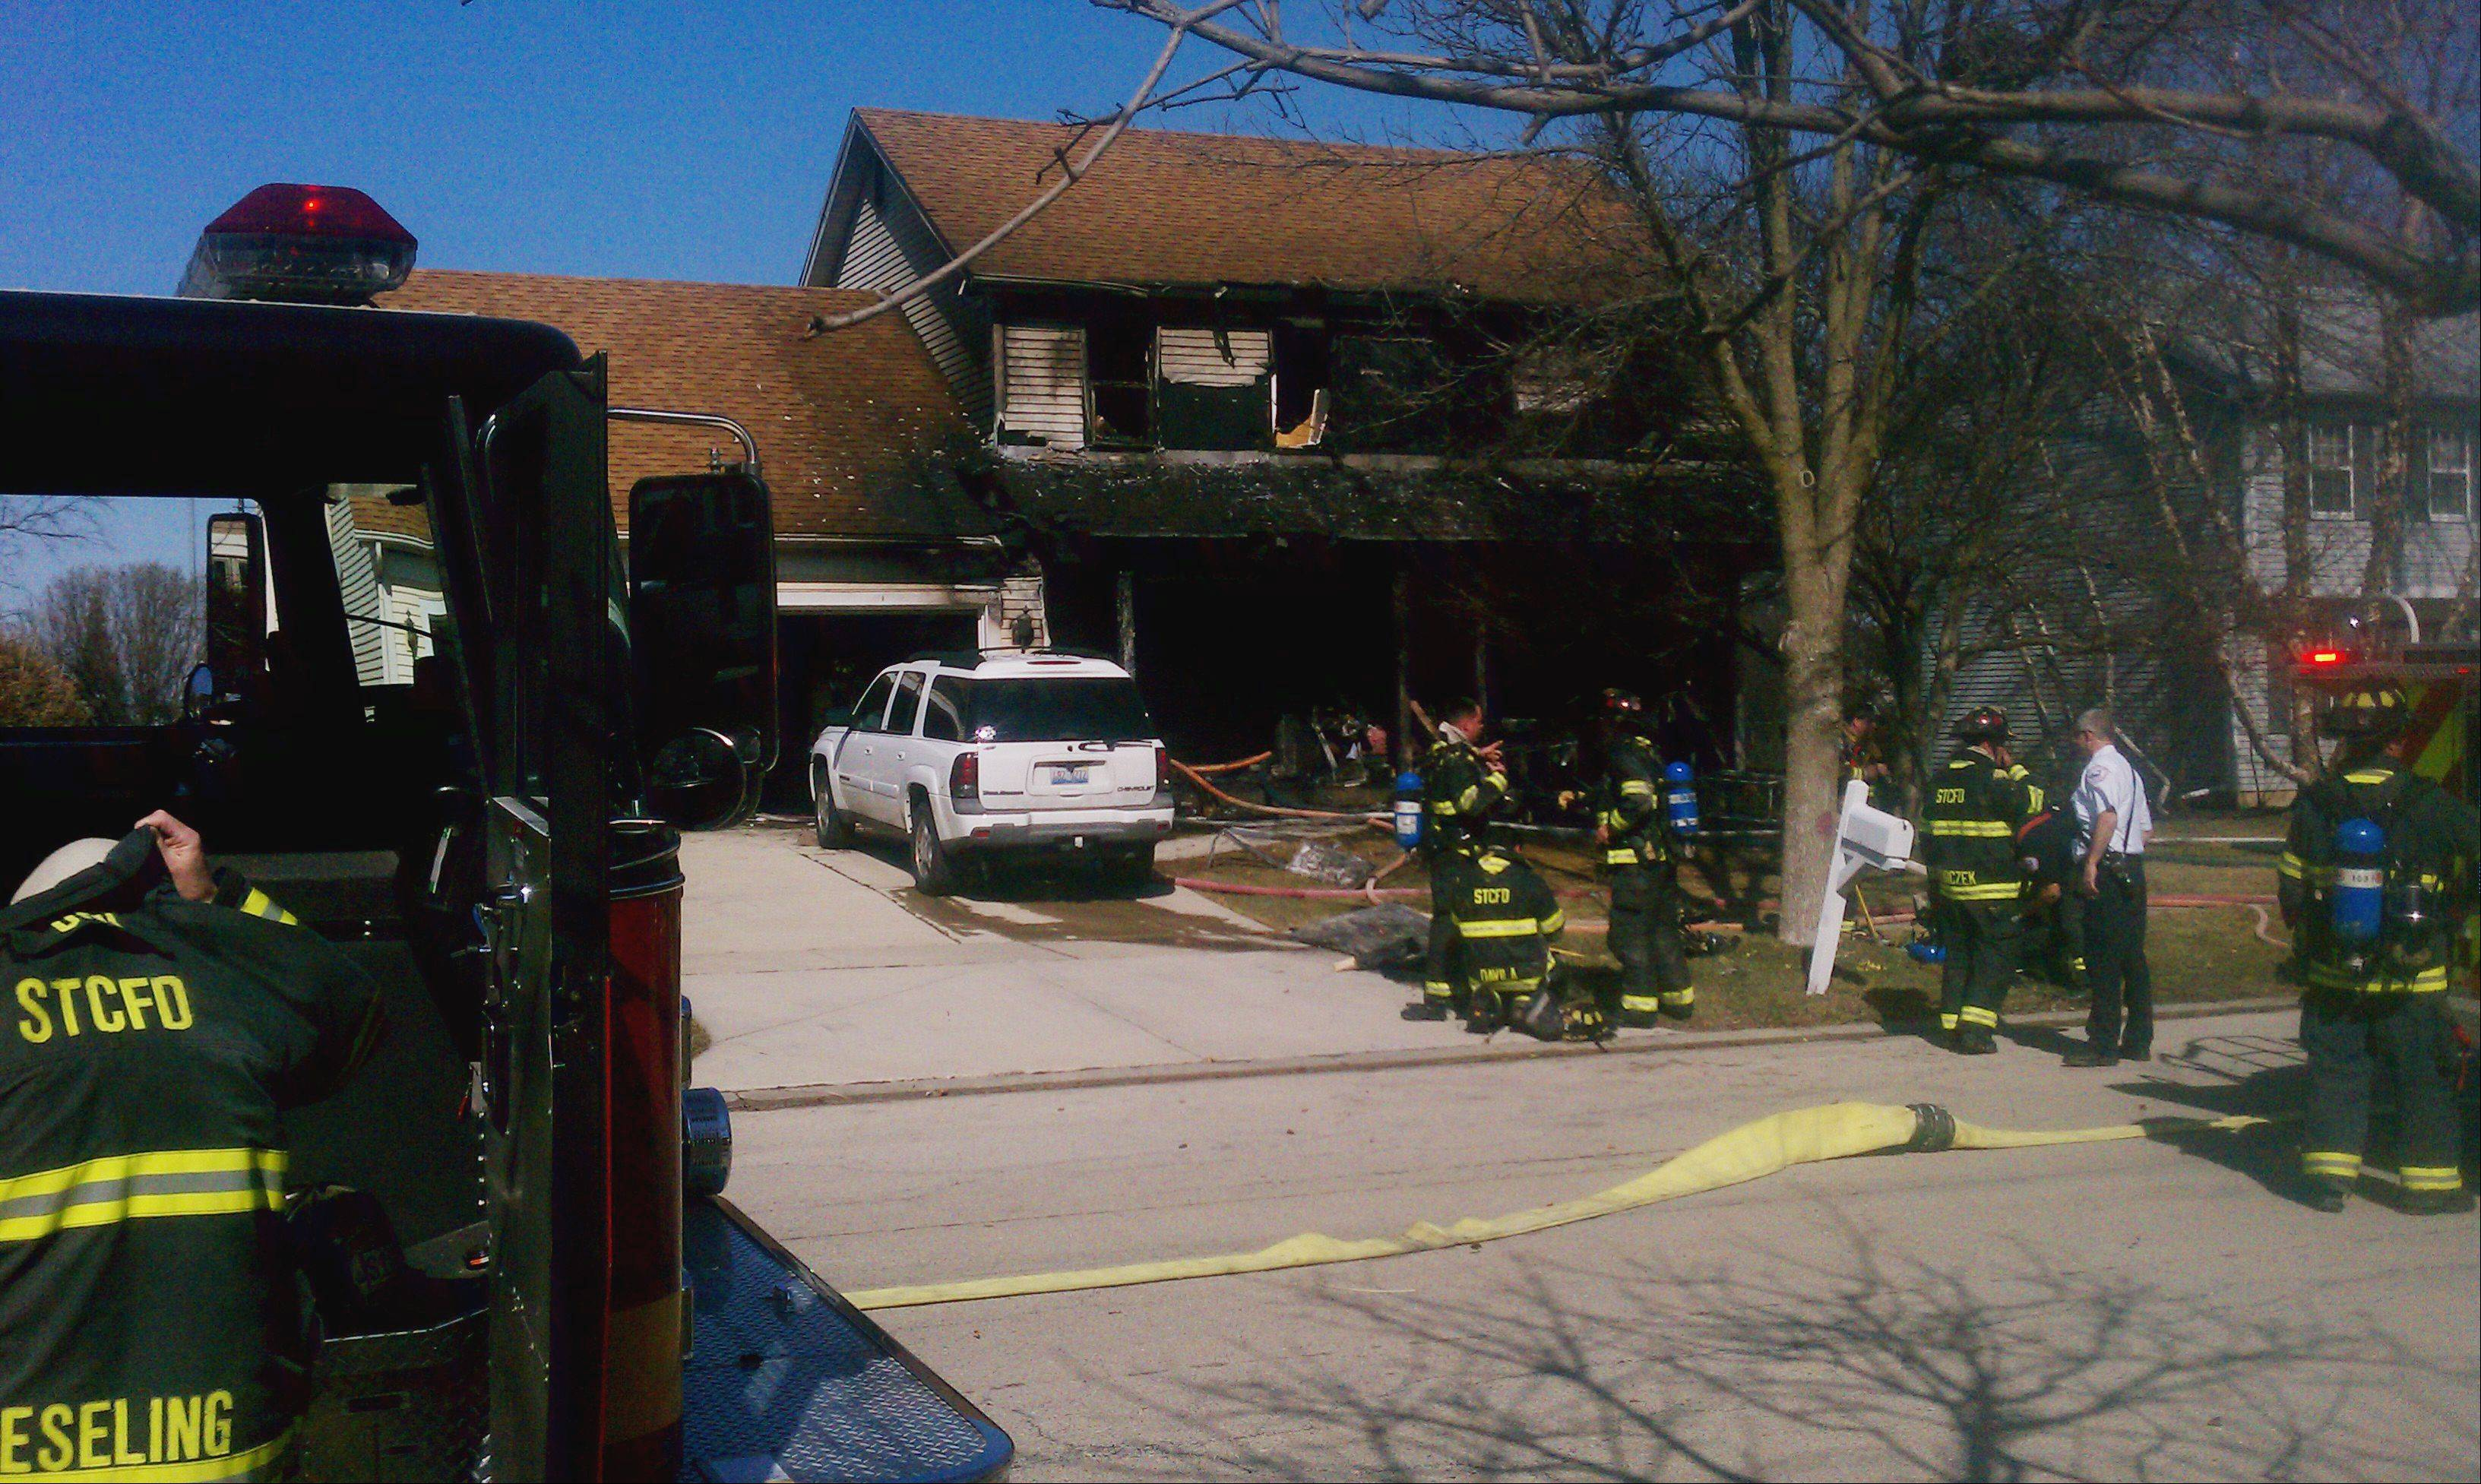 Firefighters work the scene of a structure fire in the 2000 block of Cambridge Drive Tuesday afternoon in St. Charles.